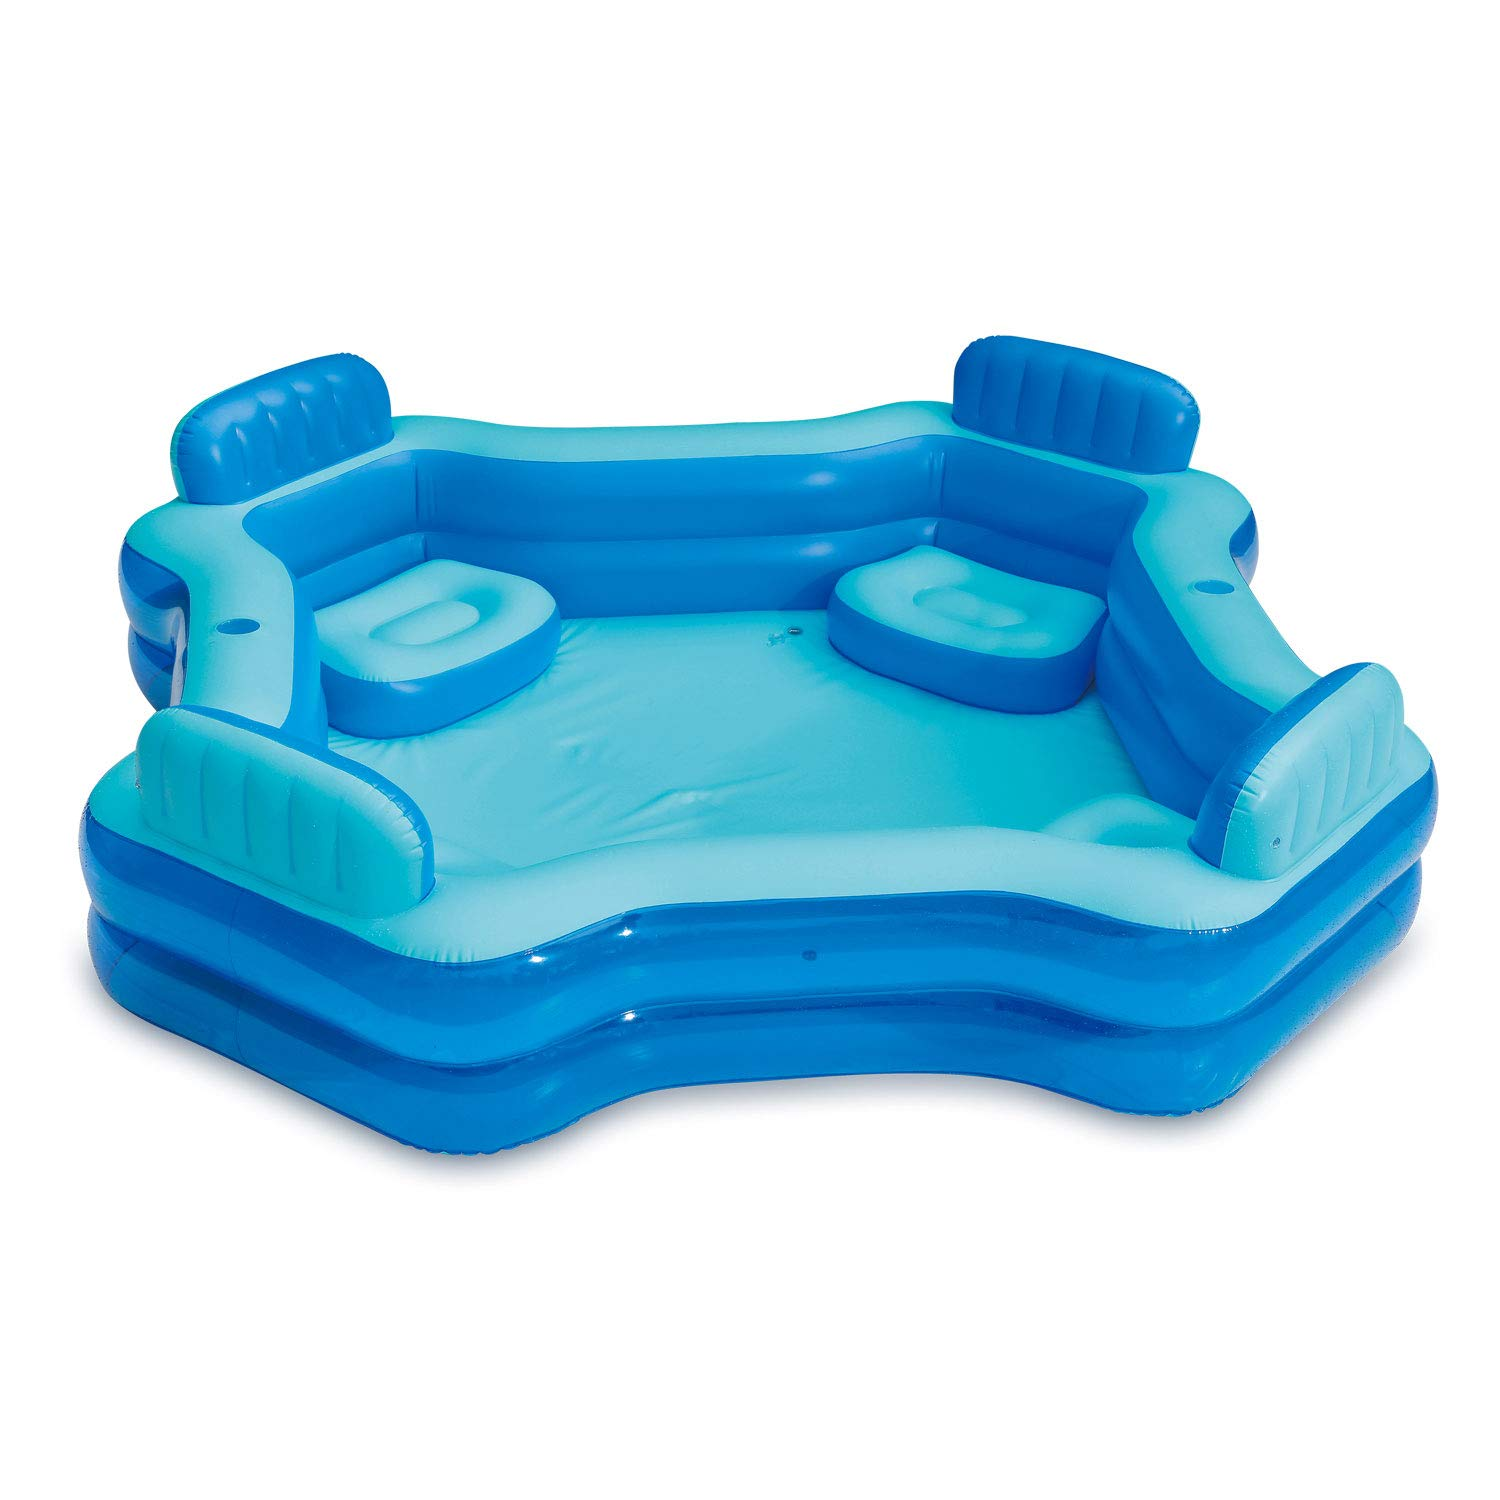 Summer Waves 8.75ft x 26in Inflatable Home 4 Person Deluxe Comfort Swimming Pool by Summer Waves